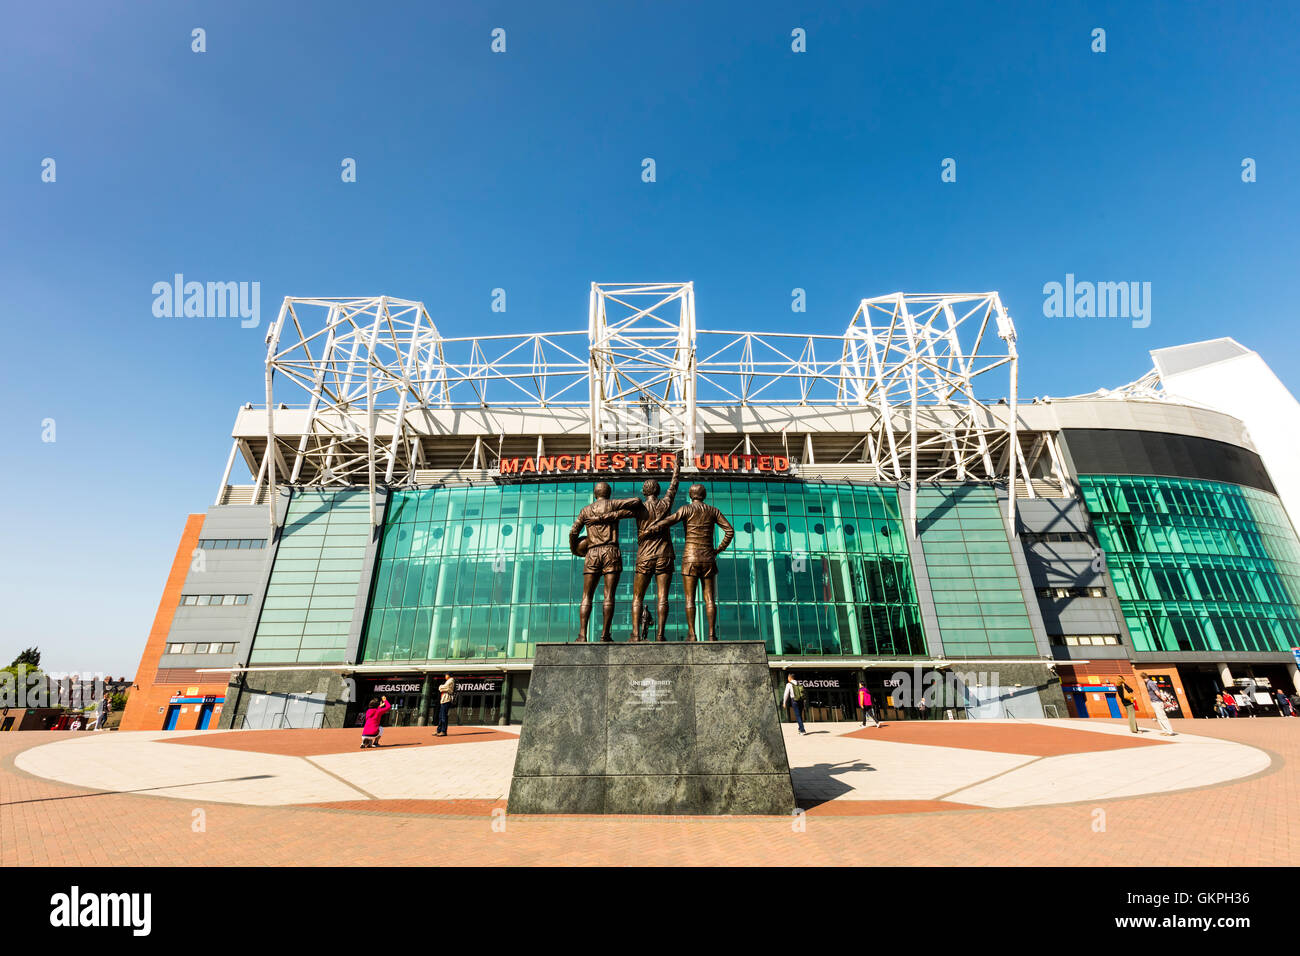 Old Trafford stadium is home to Manchester United one of the wealthiest and most widely supported football teams - Stock Image